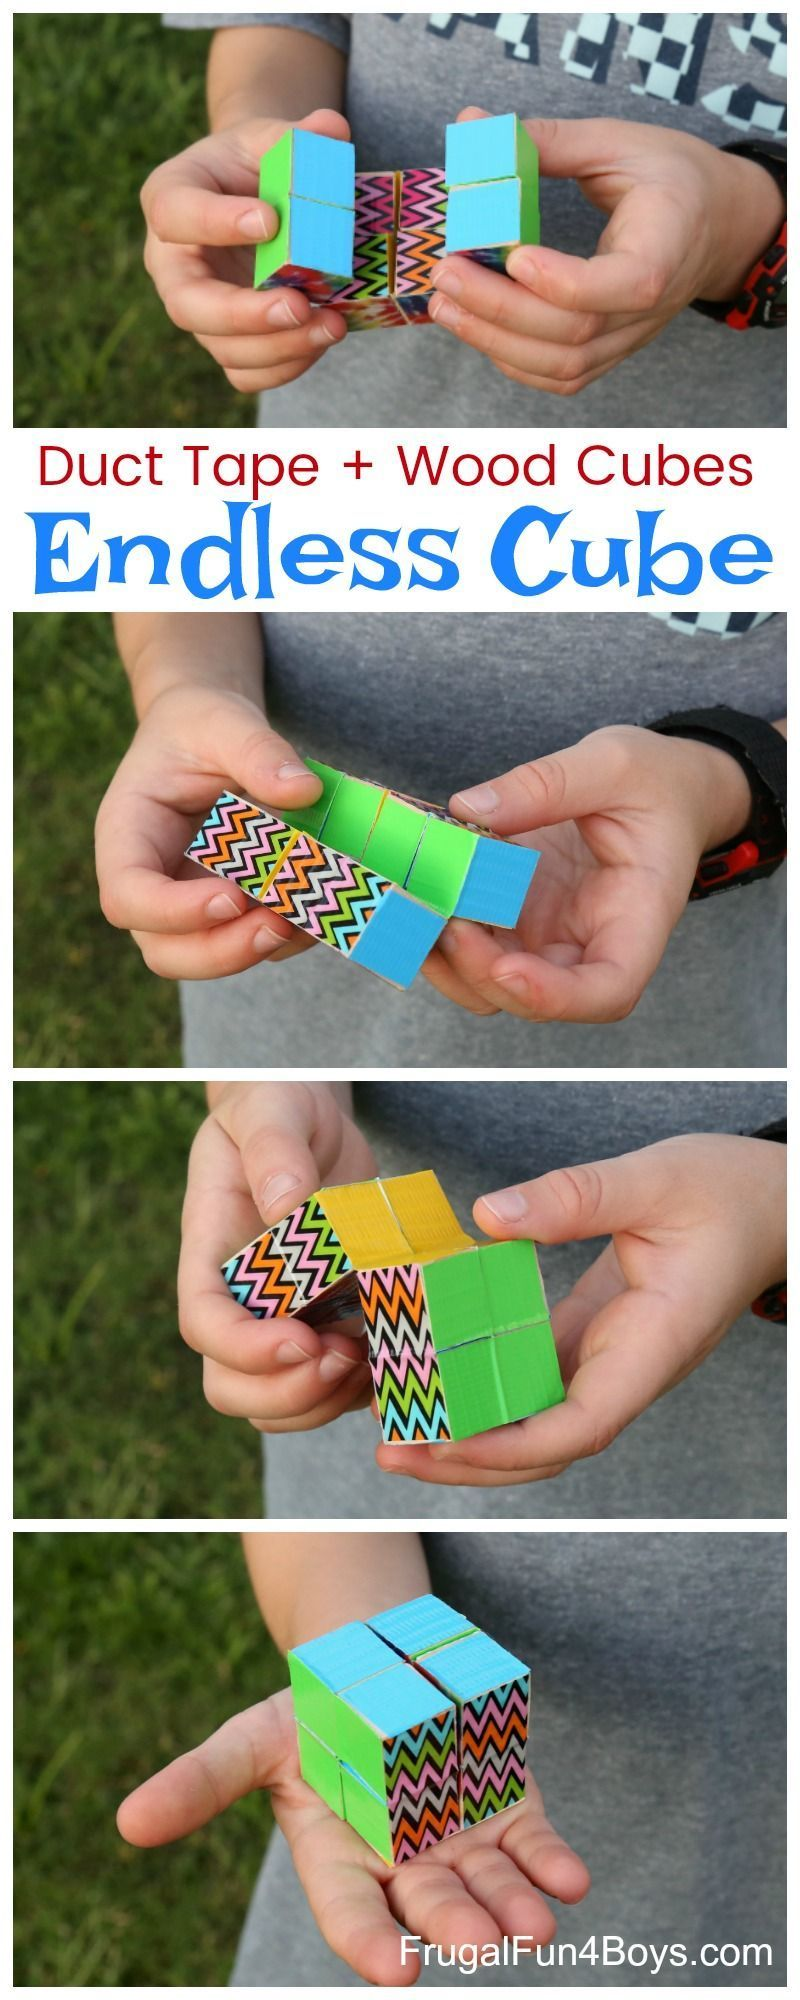 14 Fun Projects For Tweens - #14 #for #fun #projects #Tweens